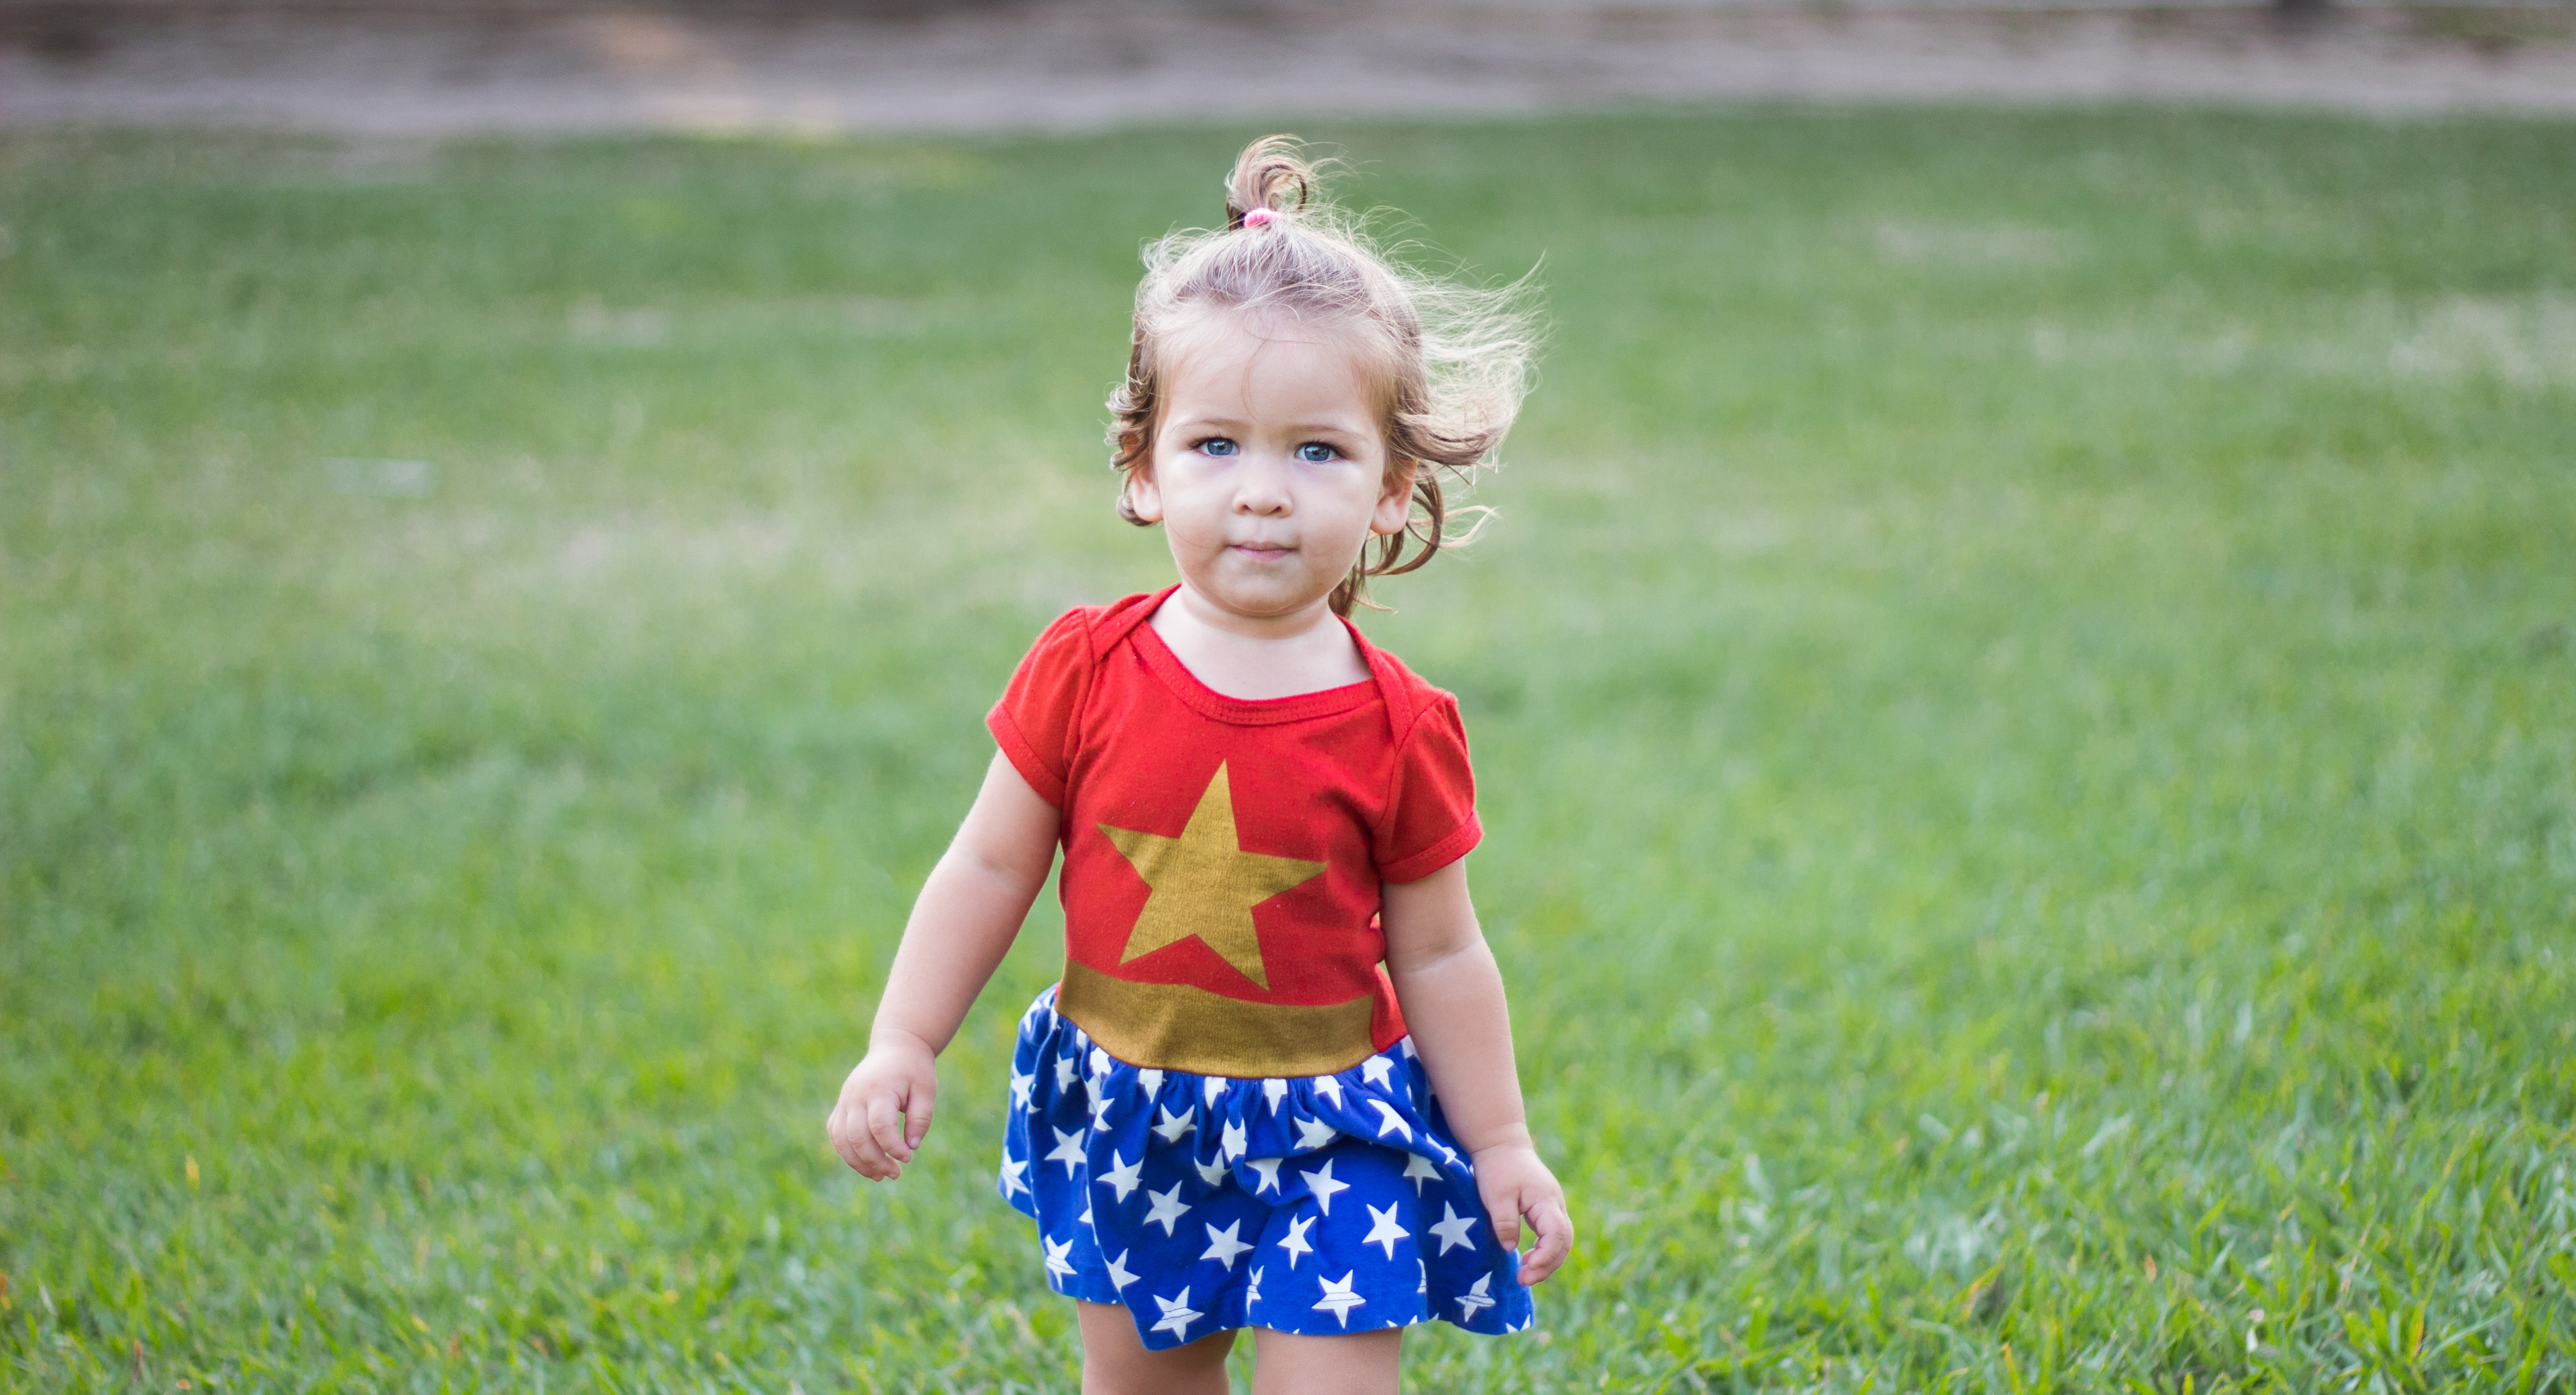 girl wearing Wonder Woman dress walking on green grass field during daytime